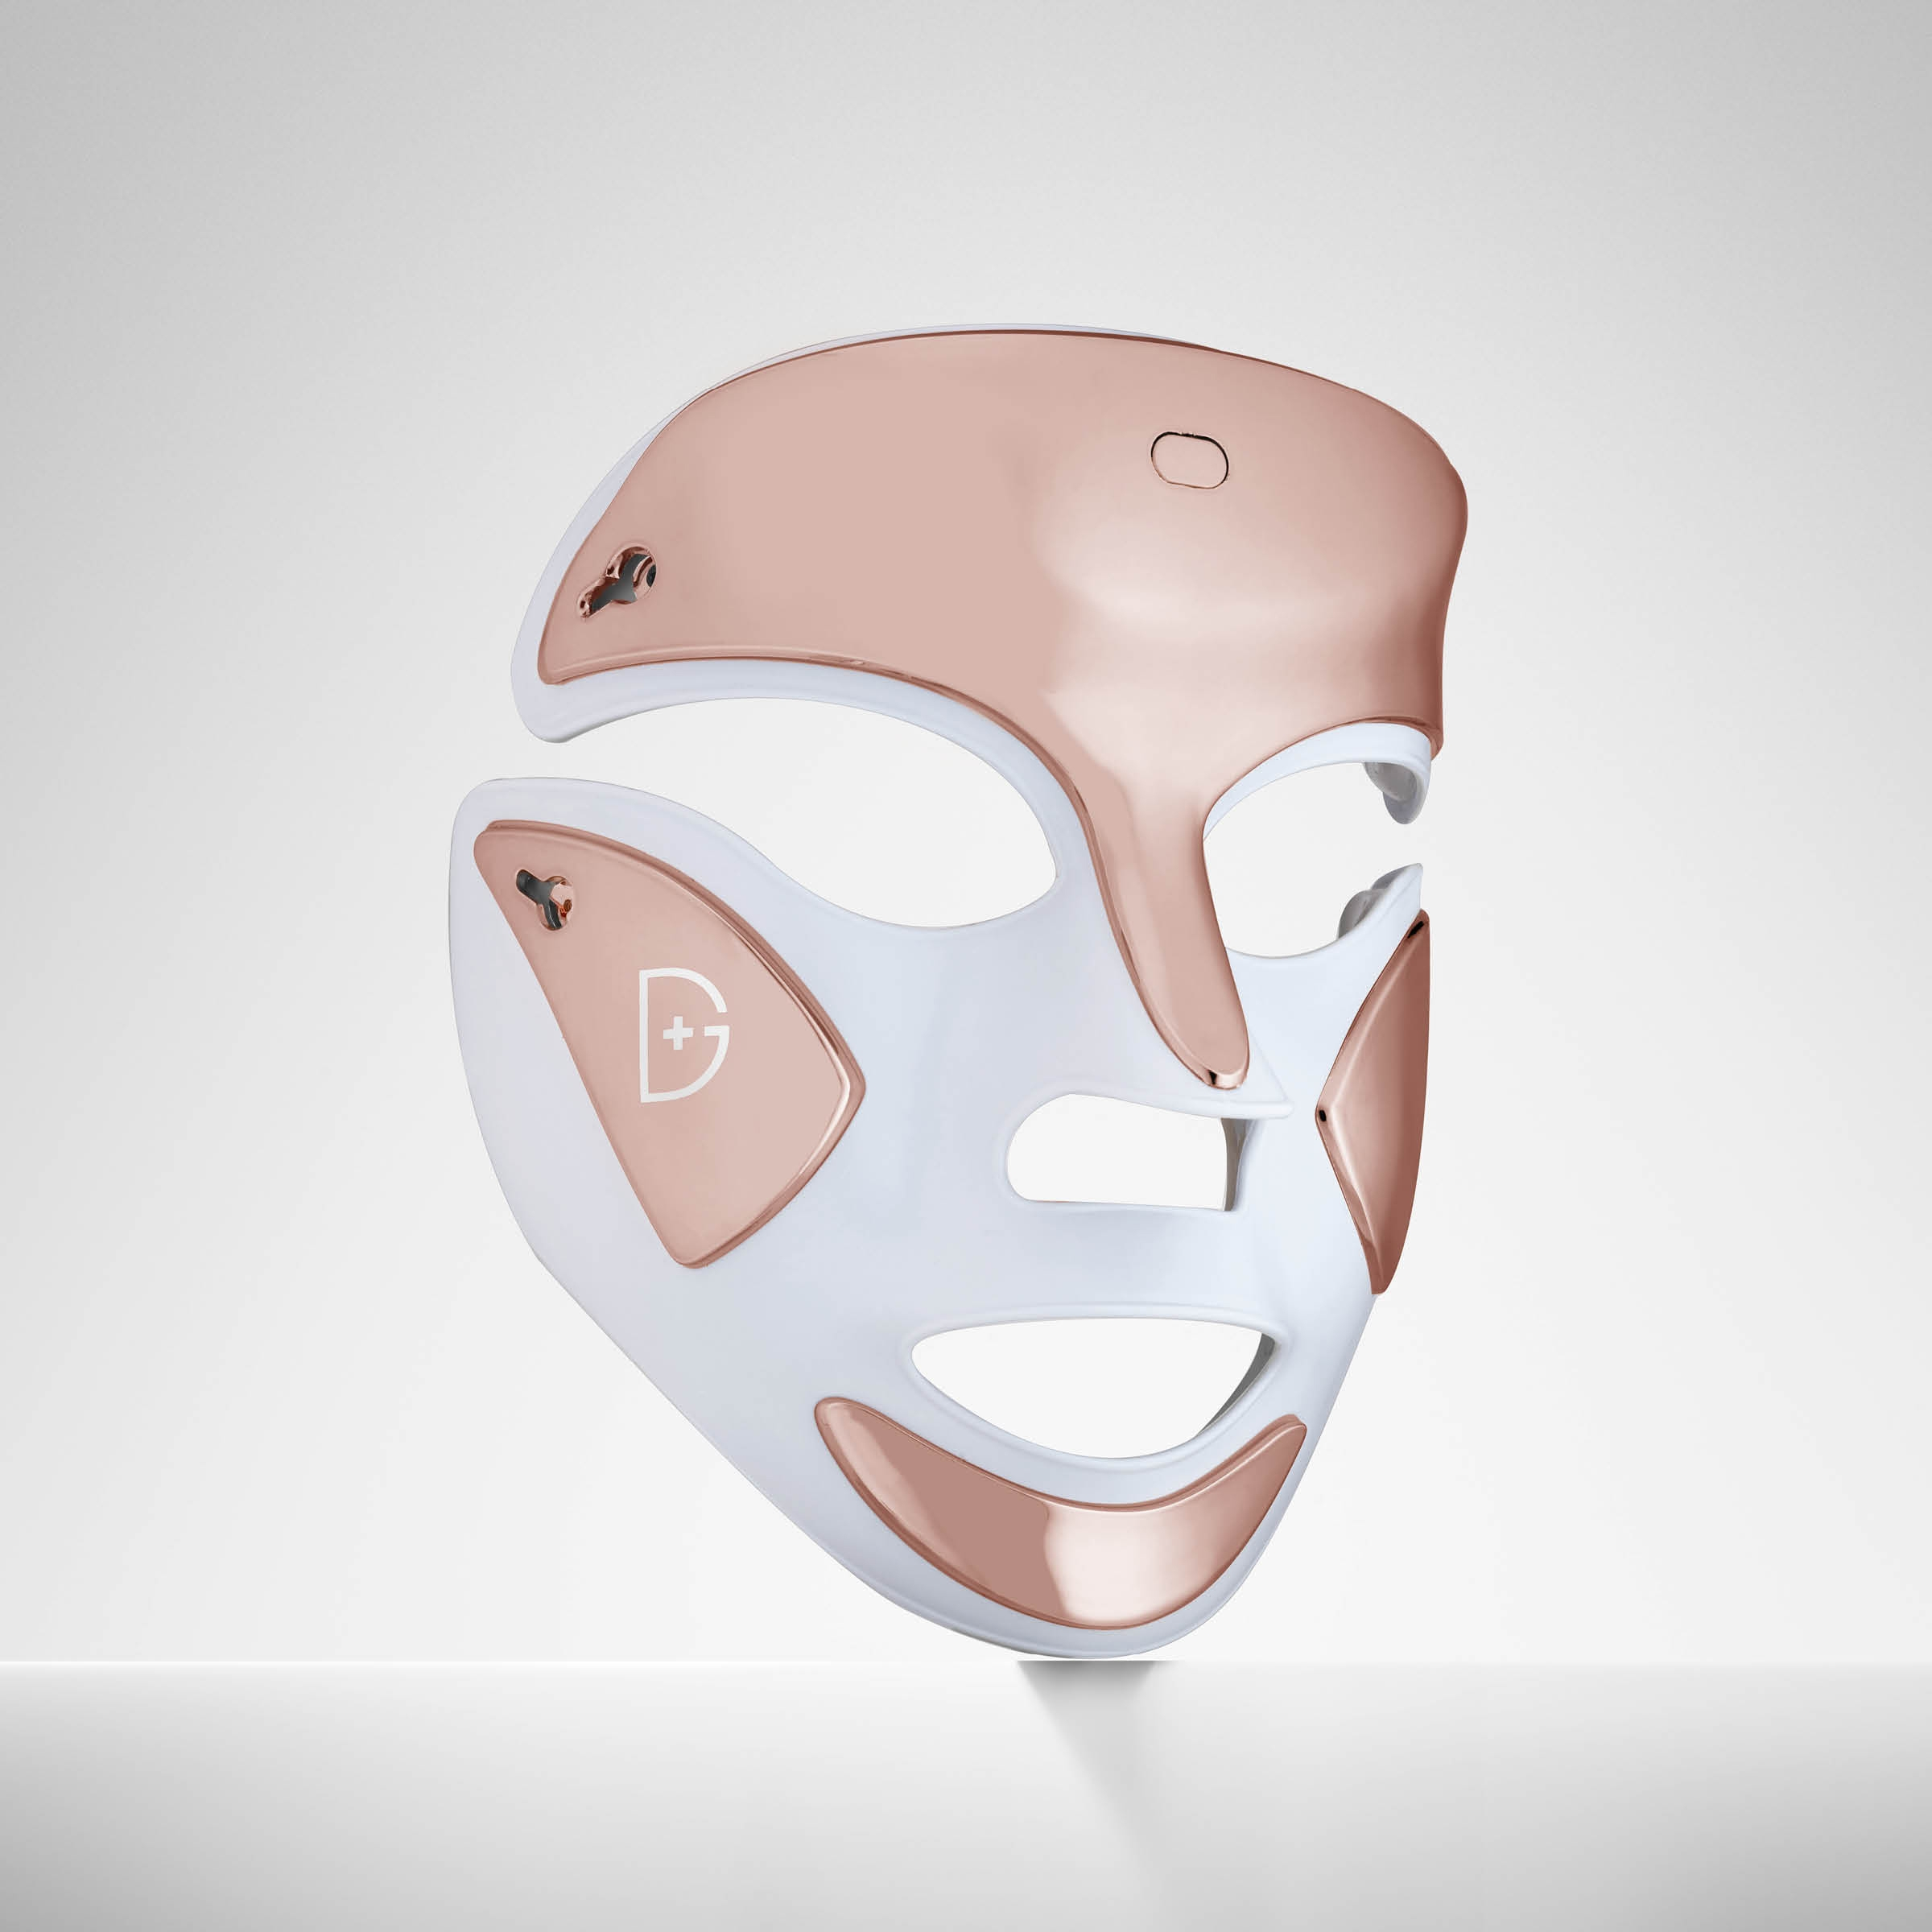 Mr. Roboto - If you're down for the full on experience, grab the SpectraLite™ Faceware Pro. Use the red light setting if you are battling wrinkles, go for the blue light setting if you are fighting acne so as to clean the skin for bacteria that leads to break outs. If you have both wrinkling and pimples, you can use the setting that integrates both the blue and red lights.Infared technology penetrates the skin to heal and clean your complexion at a deep level. It can also double as your Halloween costume.